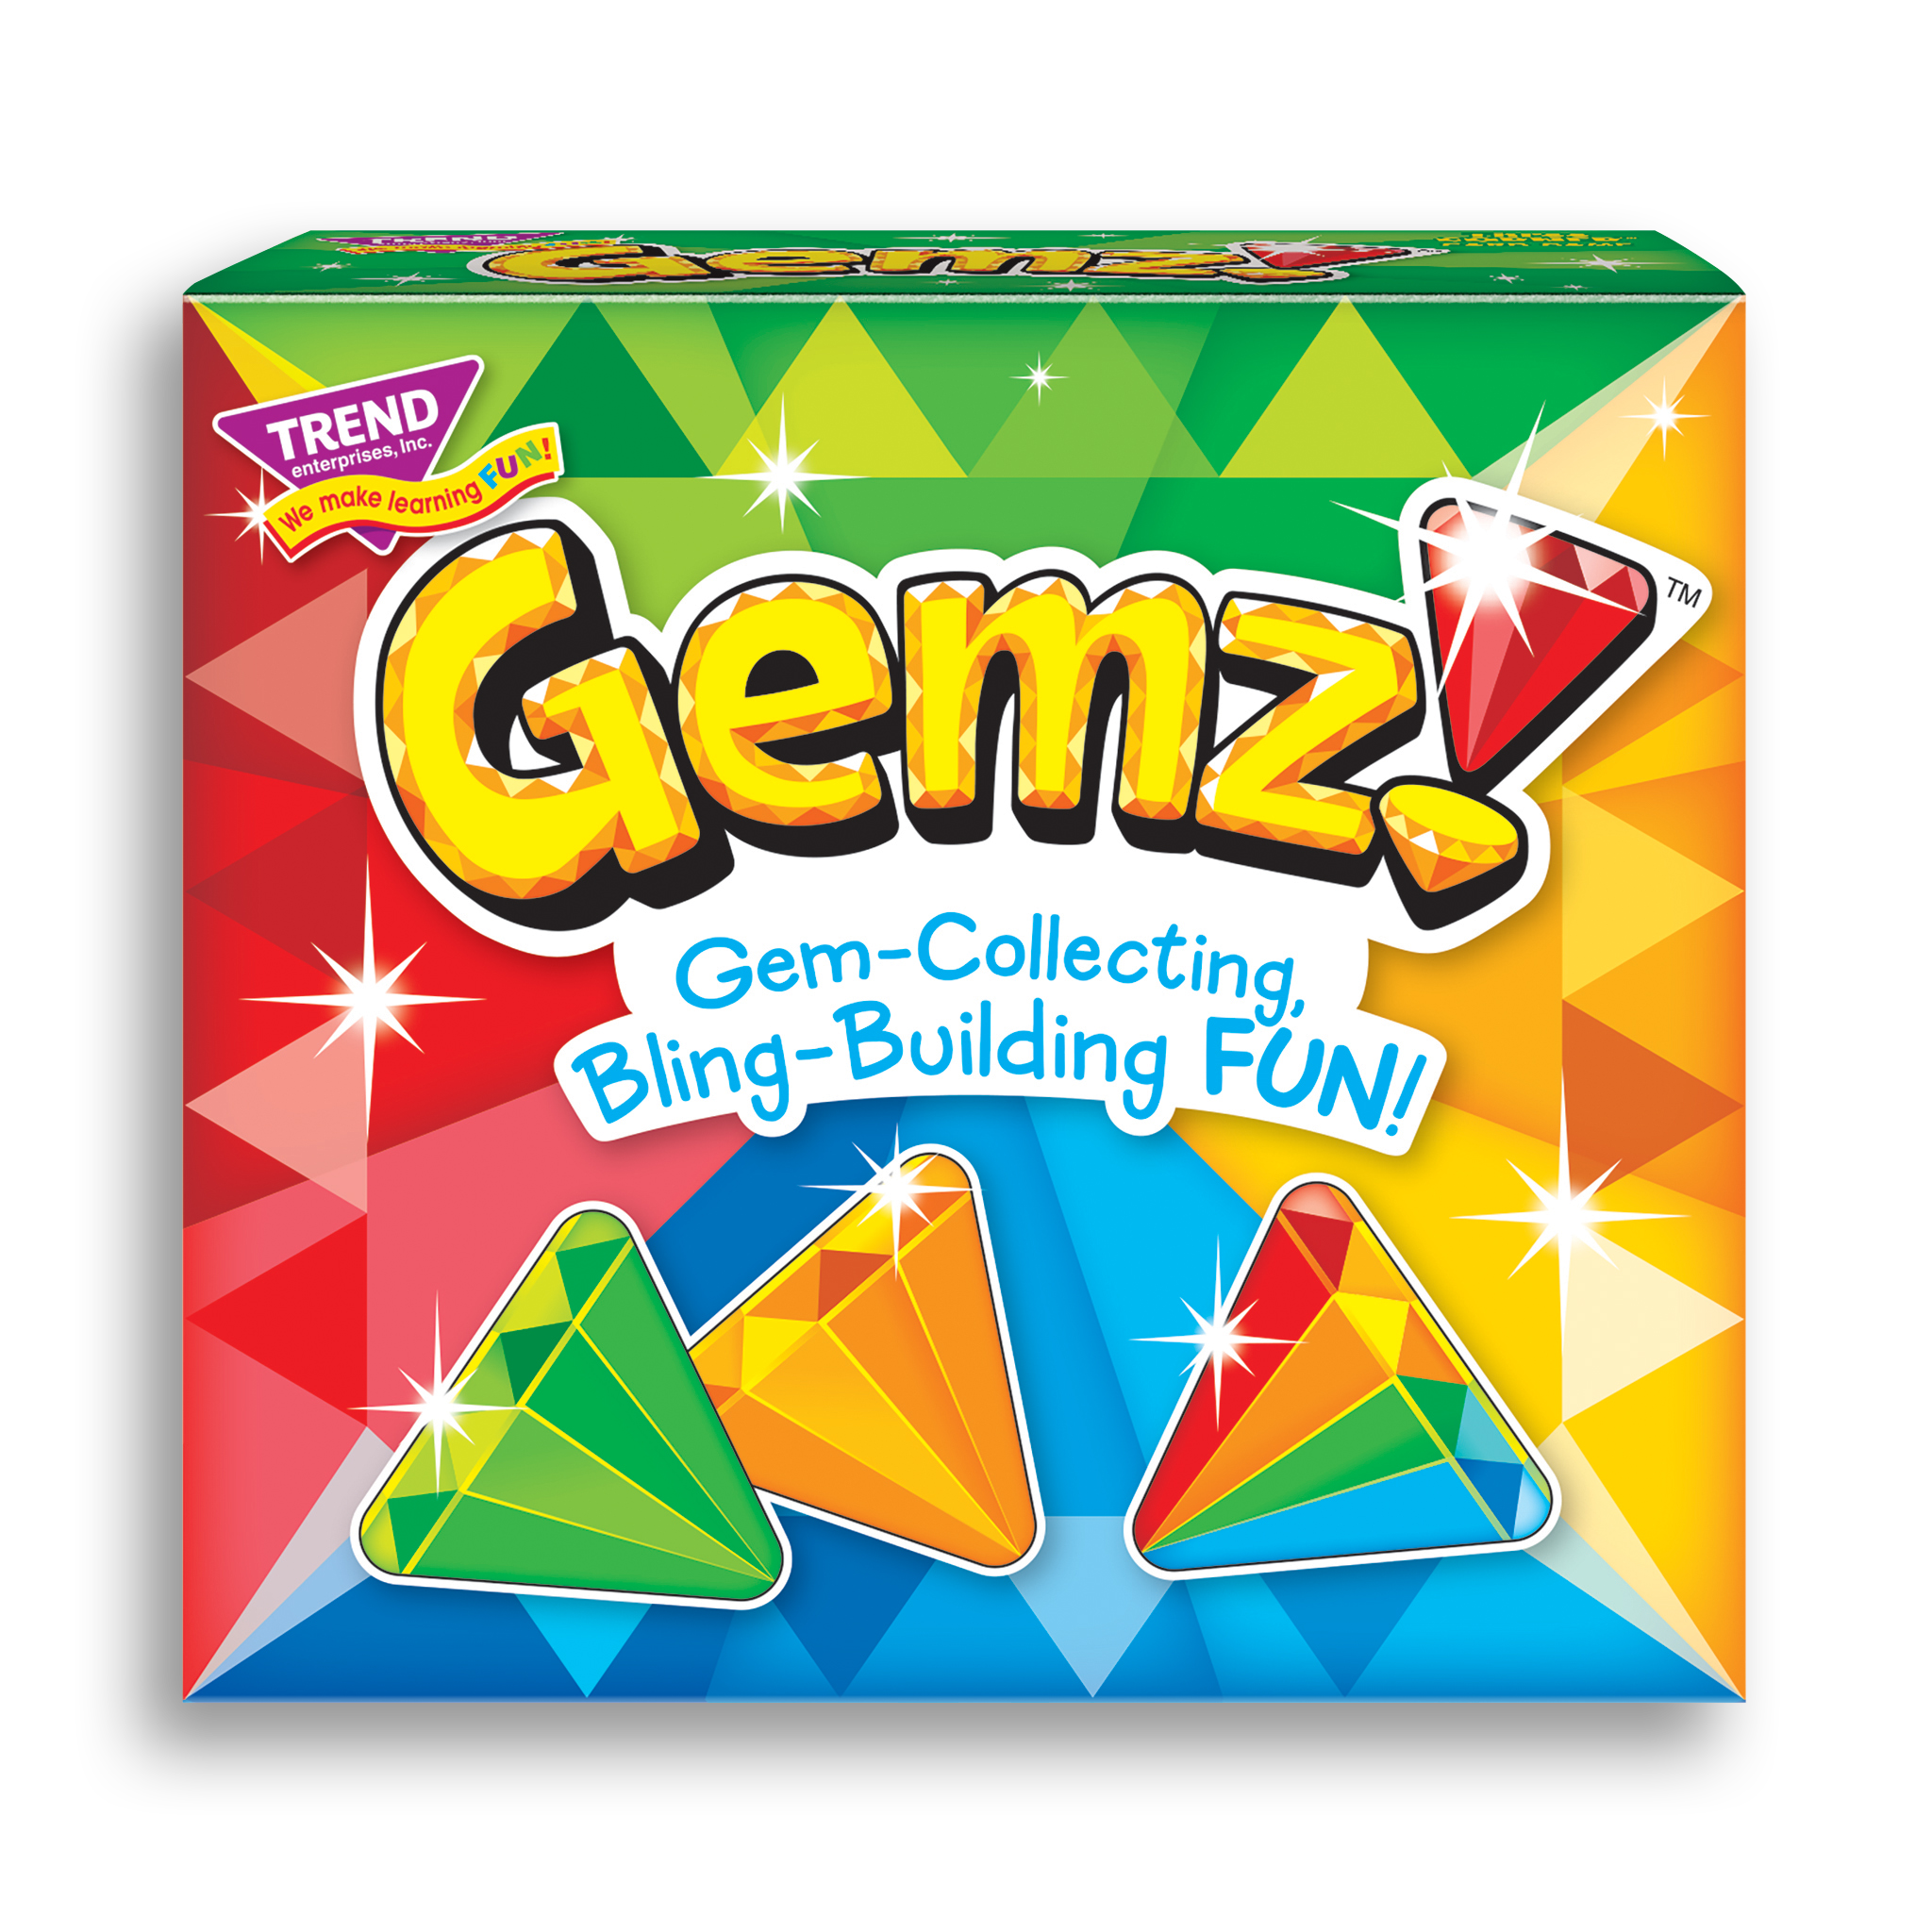 Product image of game box for Gemz!™ Three Corner™ fun card game for kids